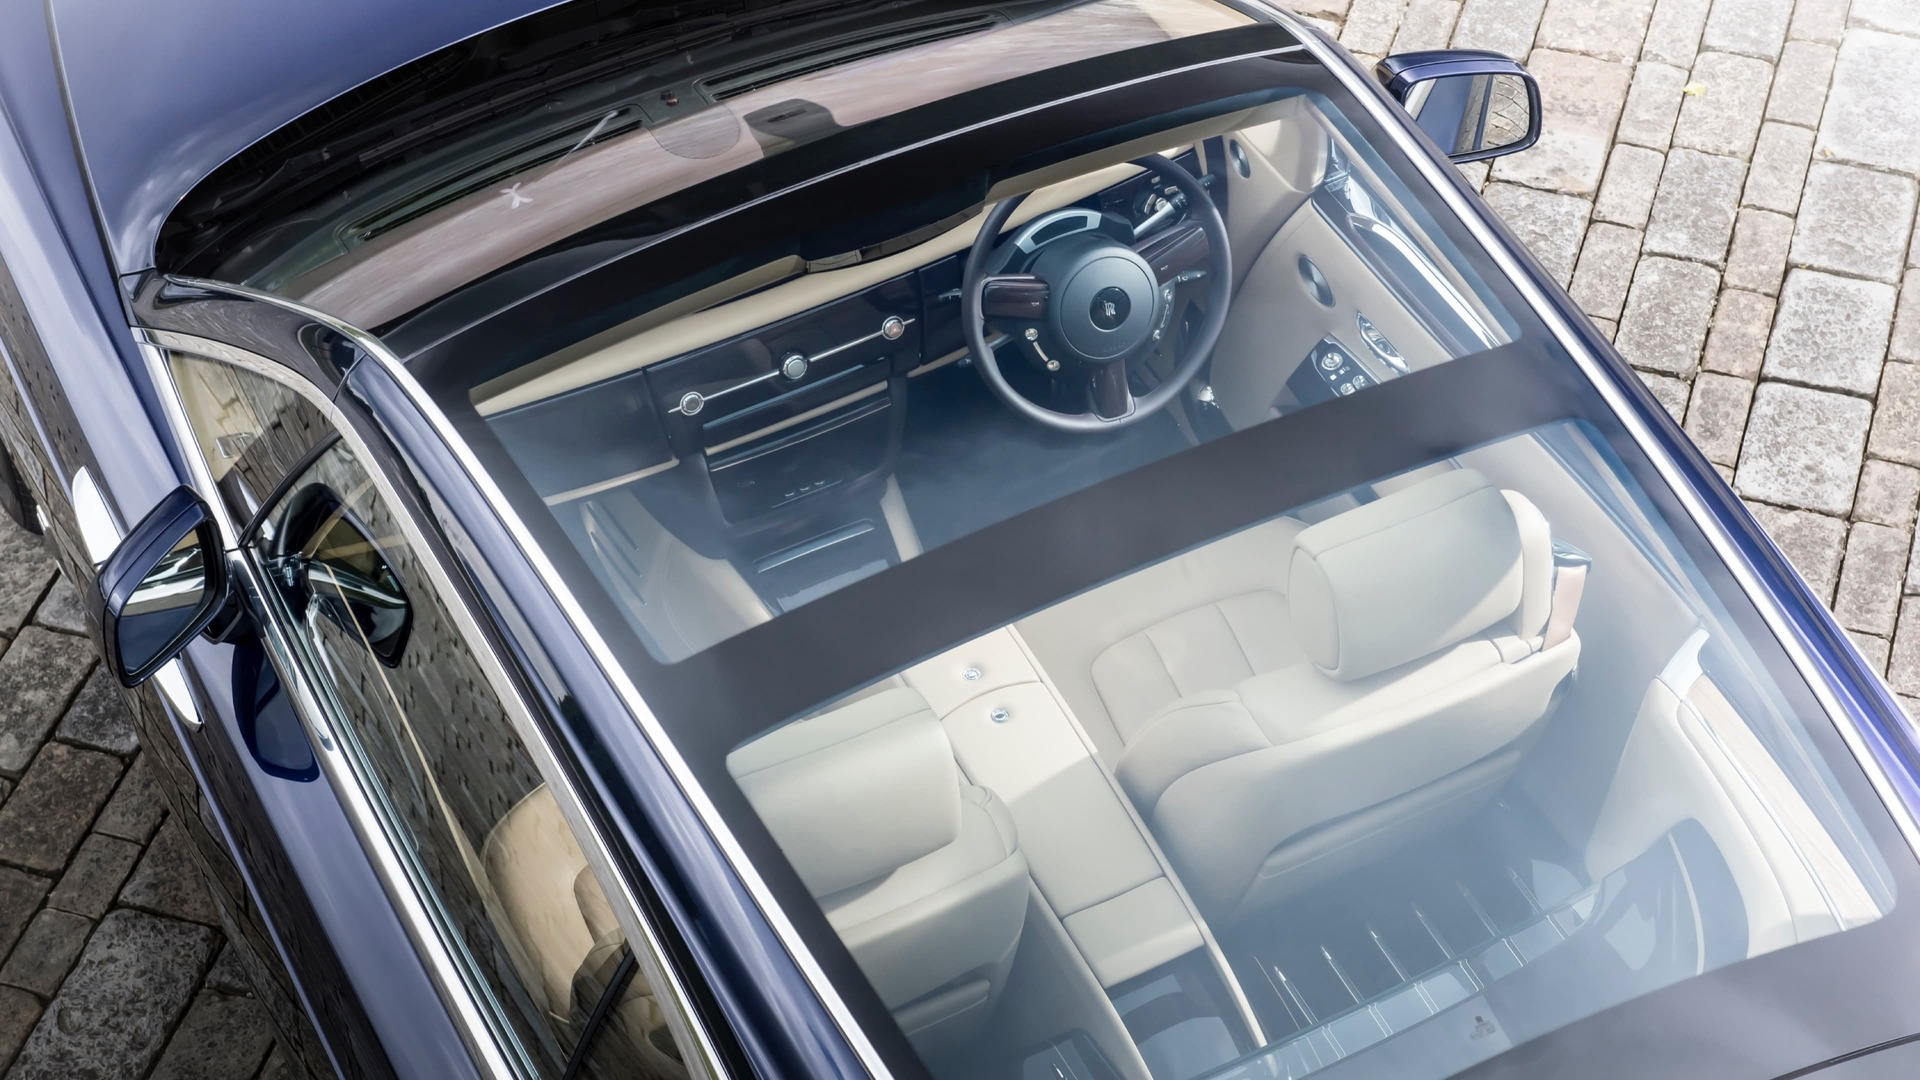 Exterior shot from above of Rolls-Royce Sweptail glass roof